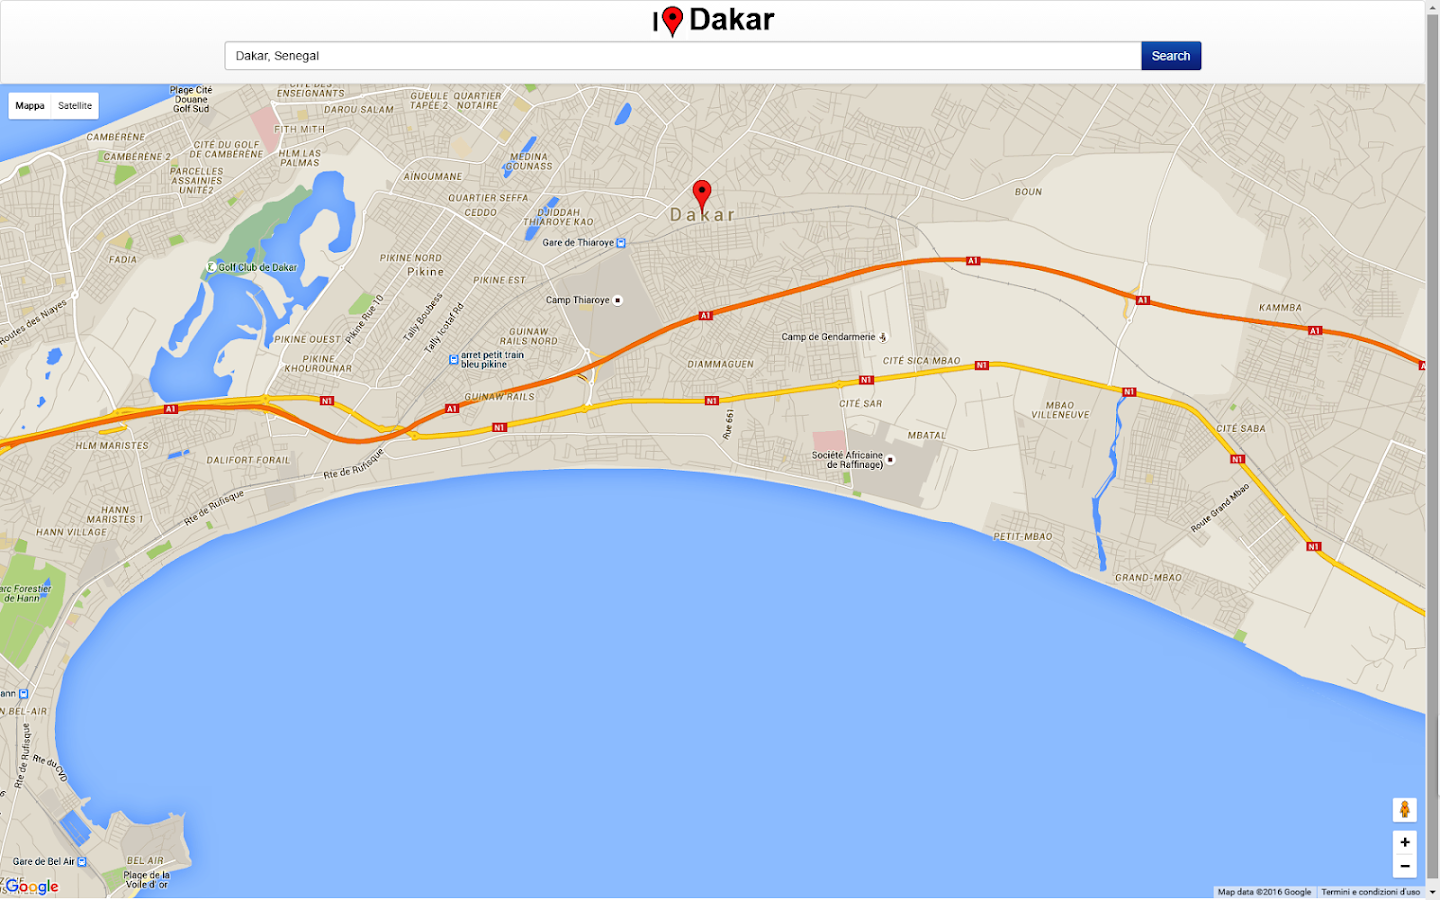 Dakar Map Android Apps On Google Play - Pikine map